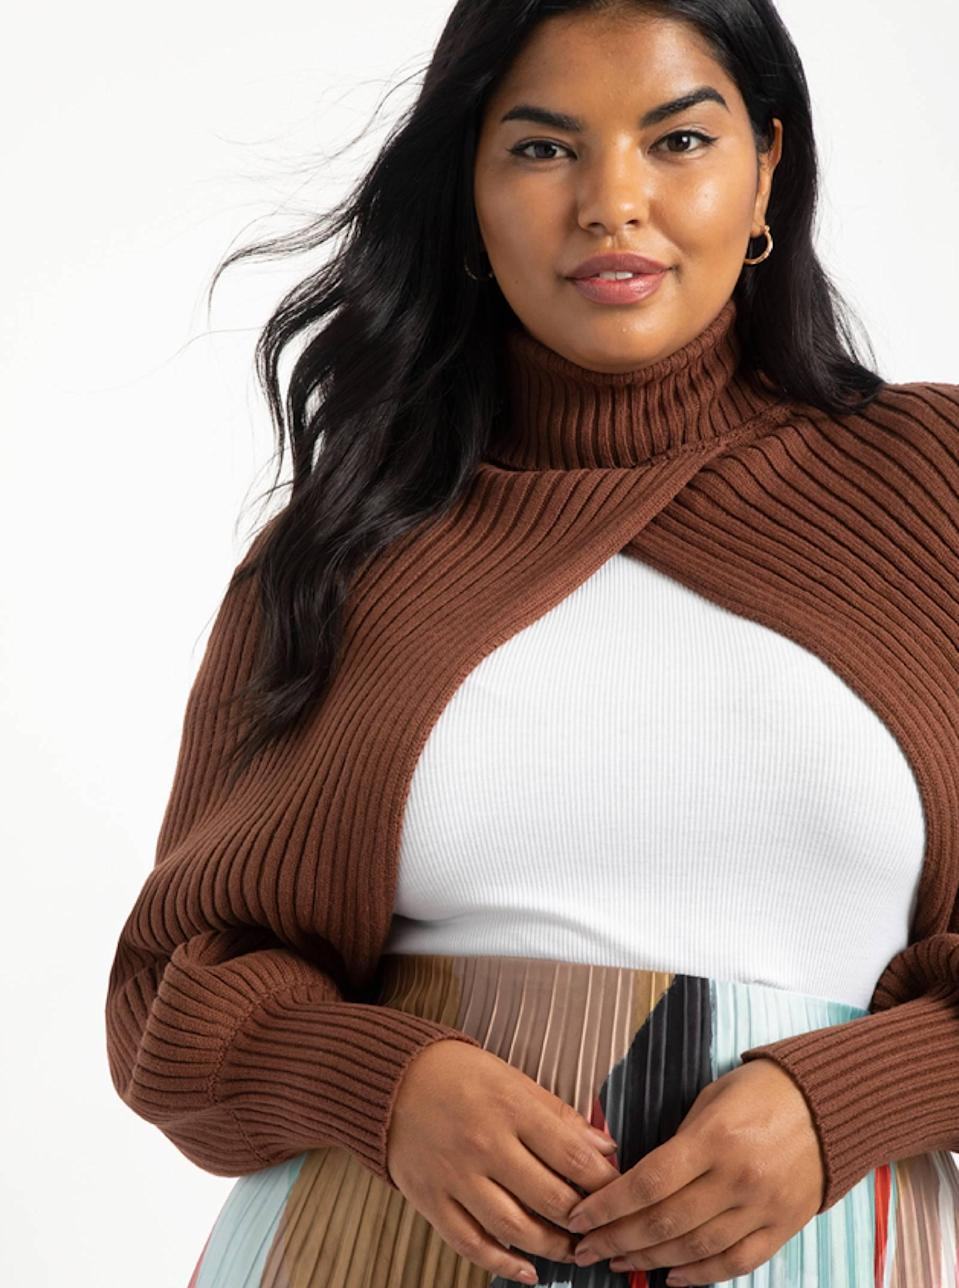 """She's smizing 'cause she knows she working this scarflike sweater. Take cues from the styling and pair it with a bodysuit and midi skirt—or swap the bottom half for leather trousers. Either would look *chef's kiss*. $70, Eloquii. <a href=""""https://www.eloquii.com/turtleneck-sweater-sleeve-scarf/1083039.html"""" rel=""""nofollow noopener"""" target=""""_blank"""" data-ylk=""""slk:Get it now!"""" class=""""link rapid-noclick-resp"""">Get it now!</a>"""